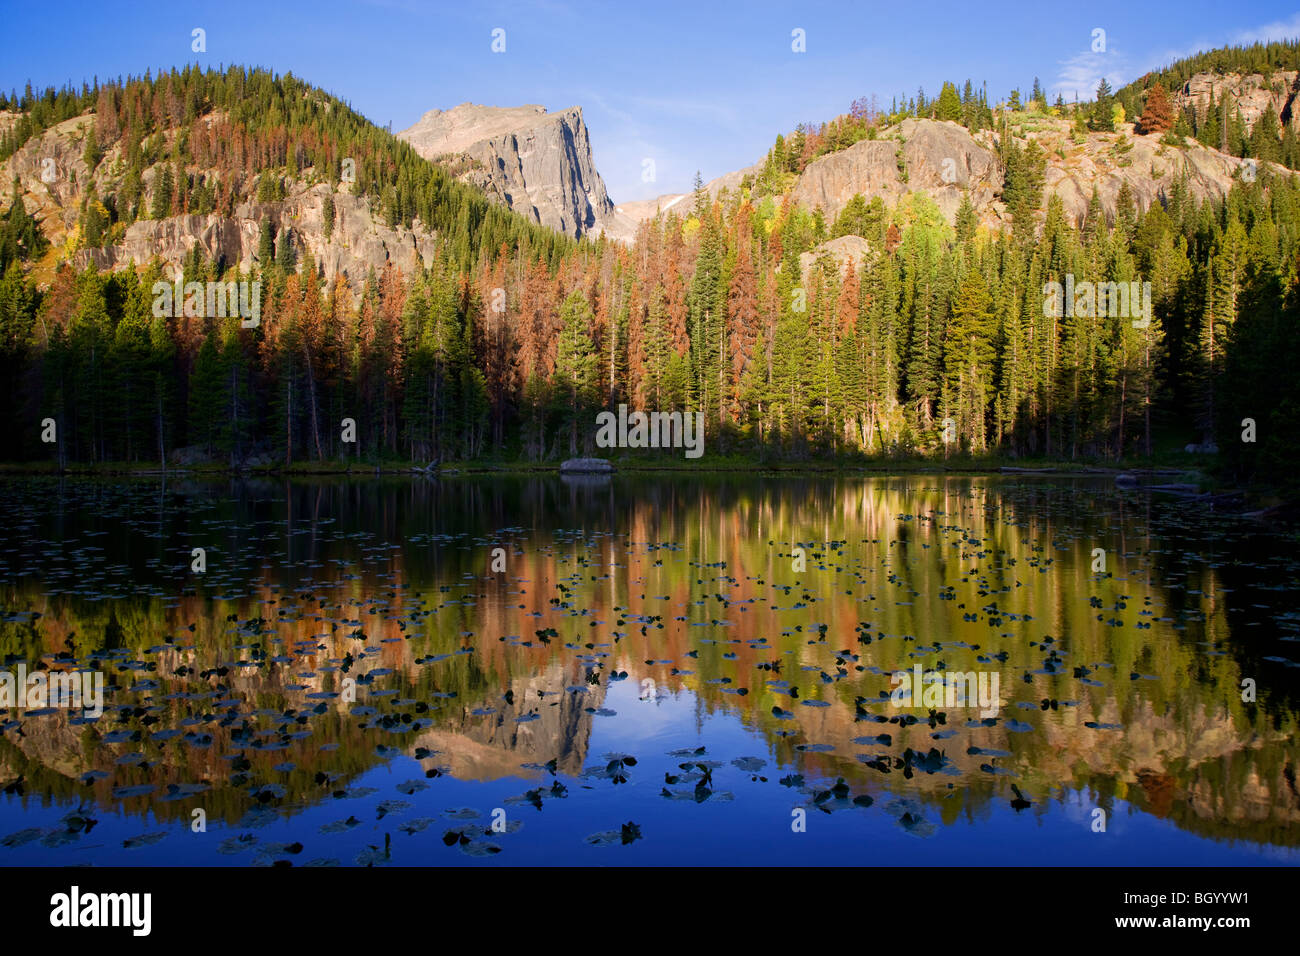 Nymphe See, Rocky Mountain National Park, Colorado. Stockbild